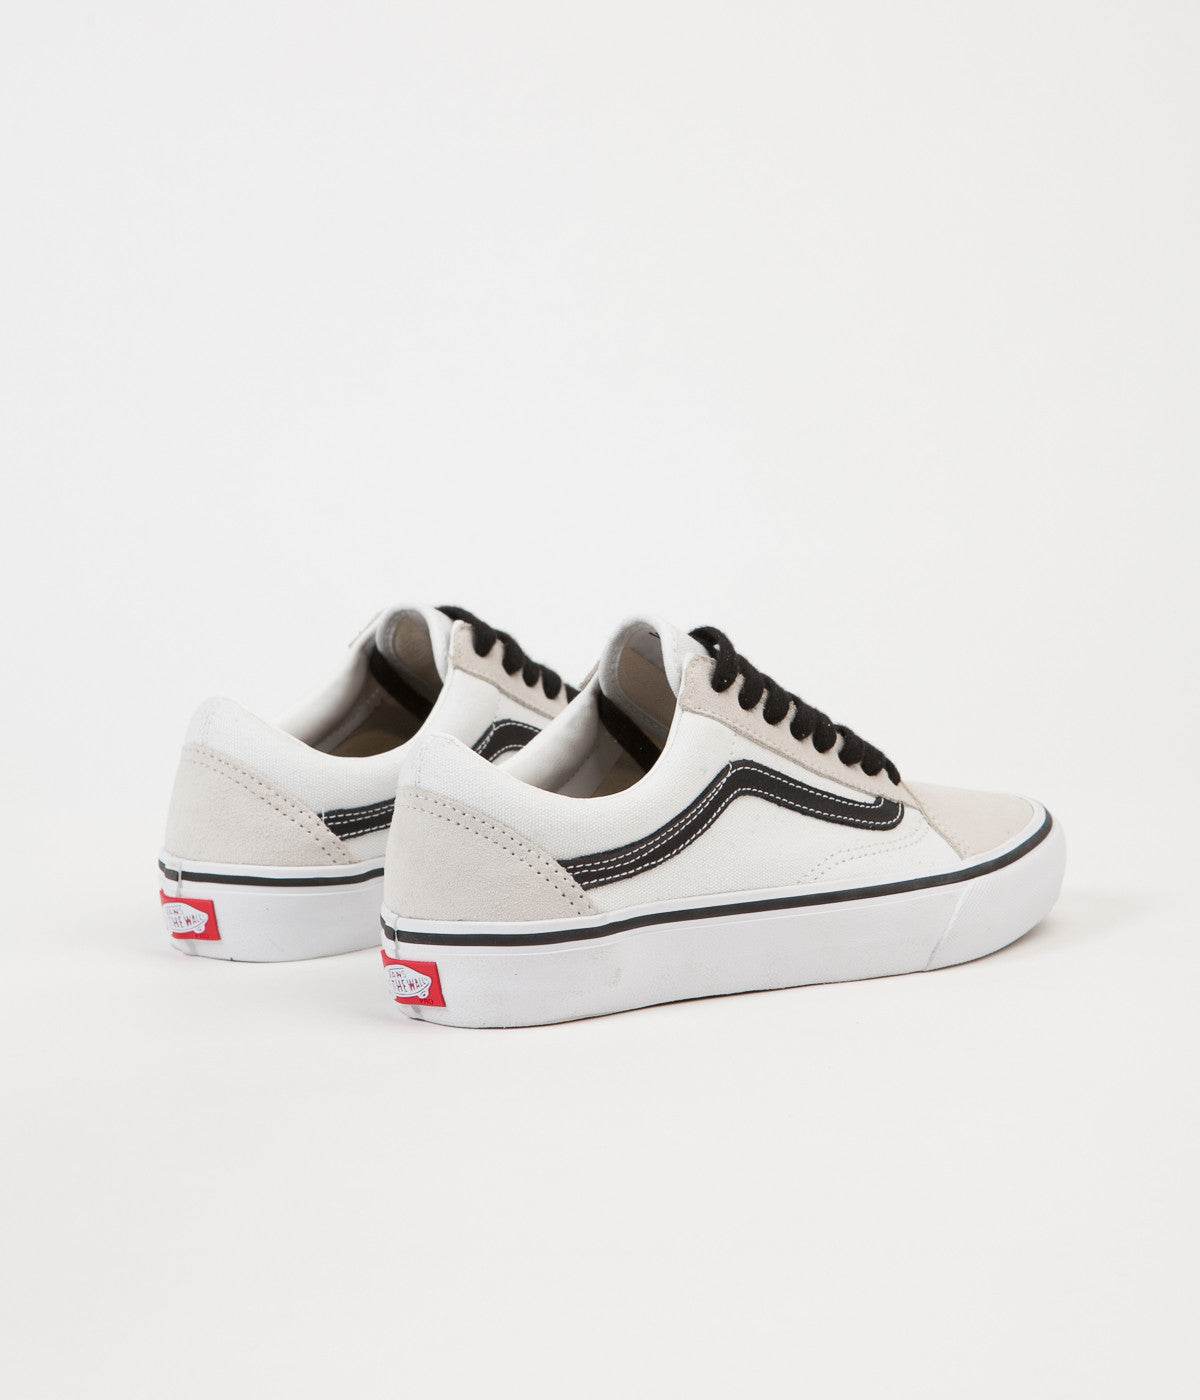 64ac6acf8be vans old skool pro 50th anniversary off 57% - www.jardinbeauregard.com